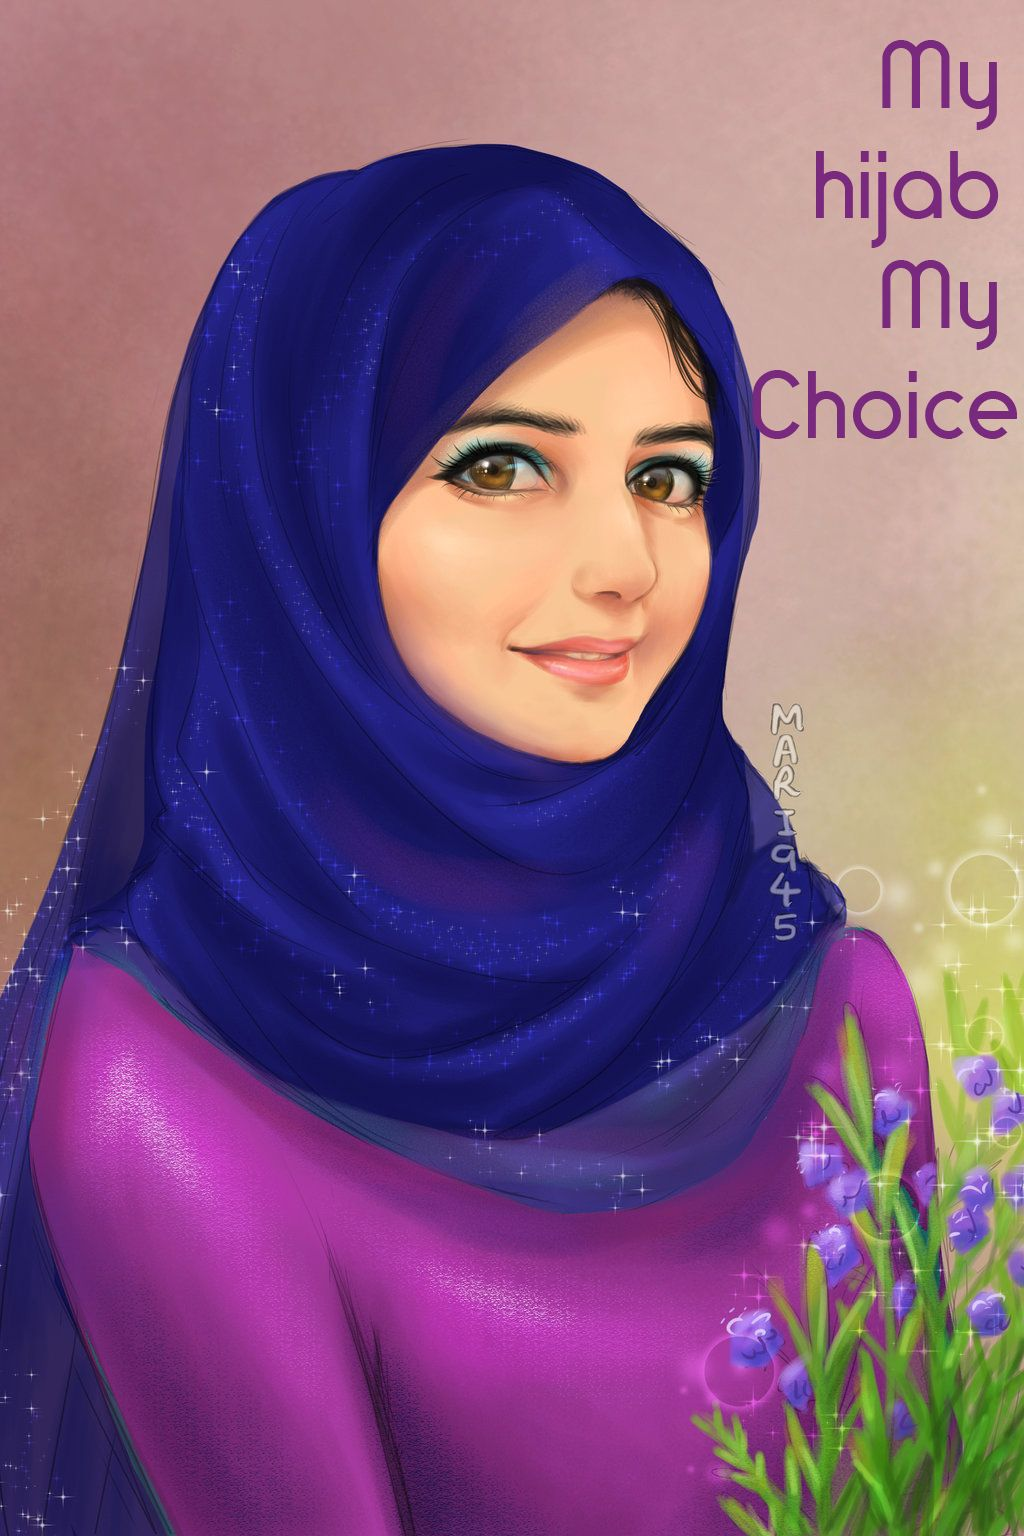 Dp For Girls Hijabi Girl Hijab Muslim Women Islam